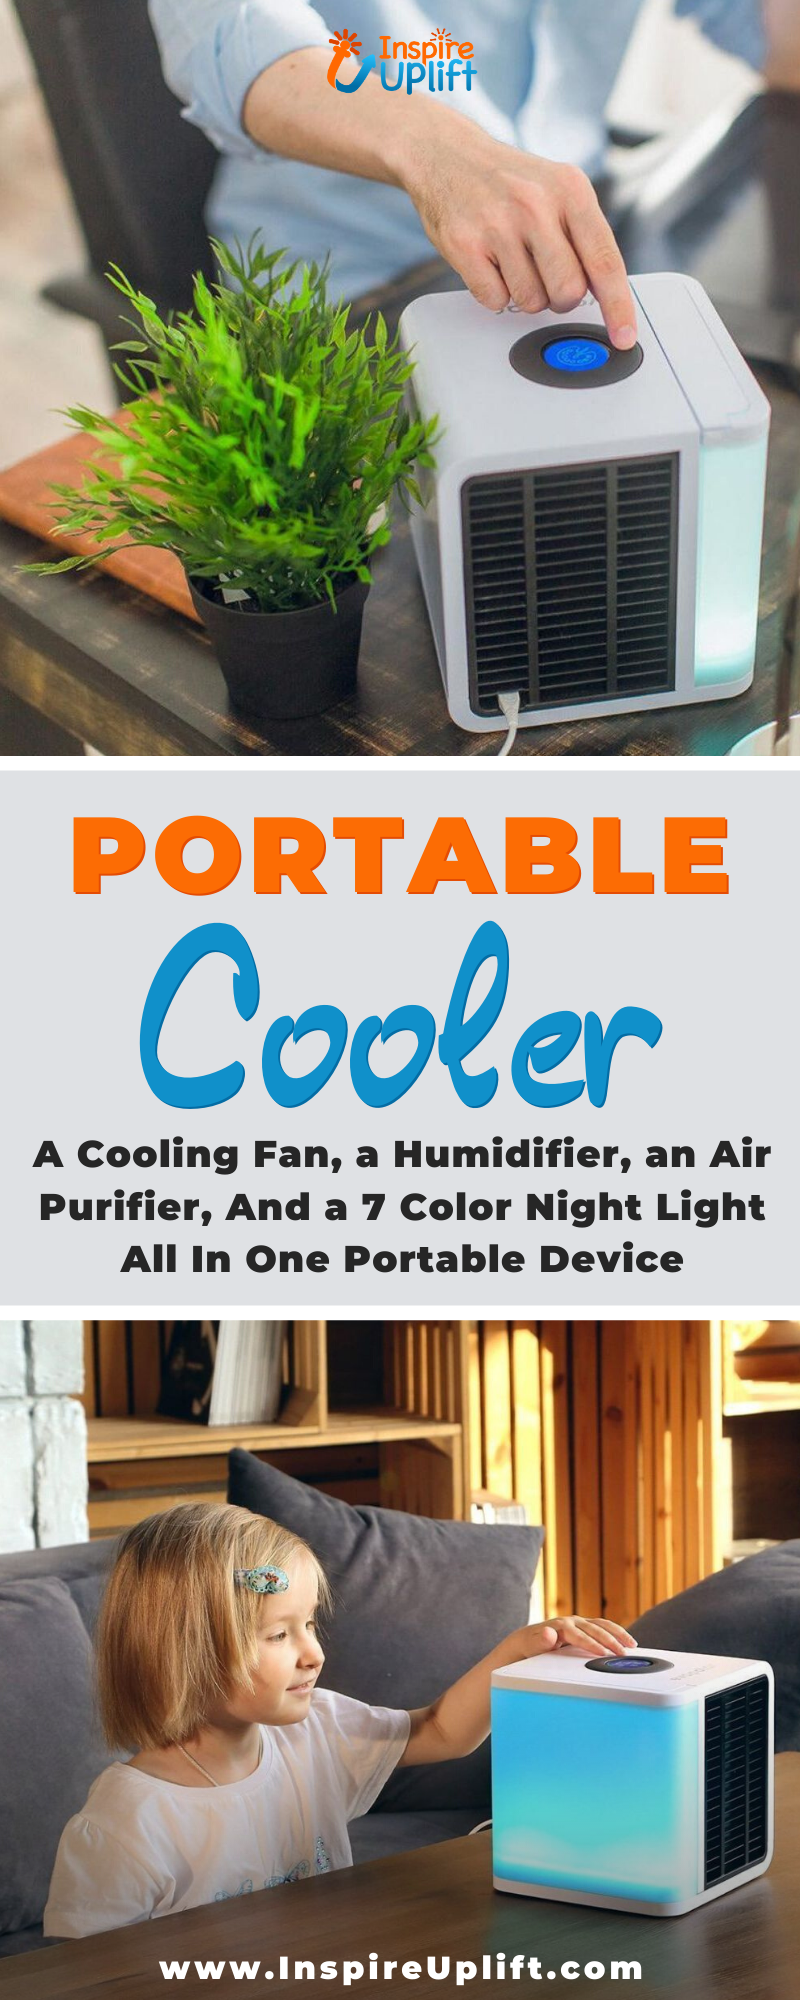 The Icy Portable Cooler combines the functions of a